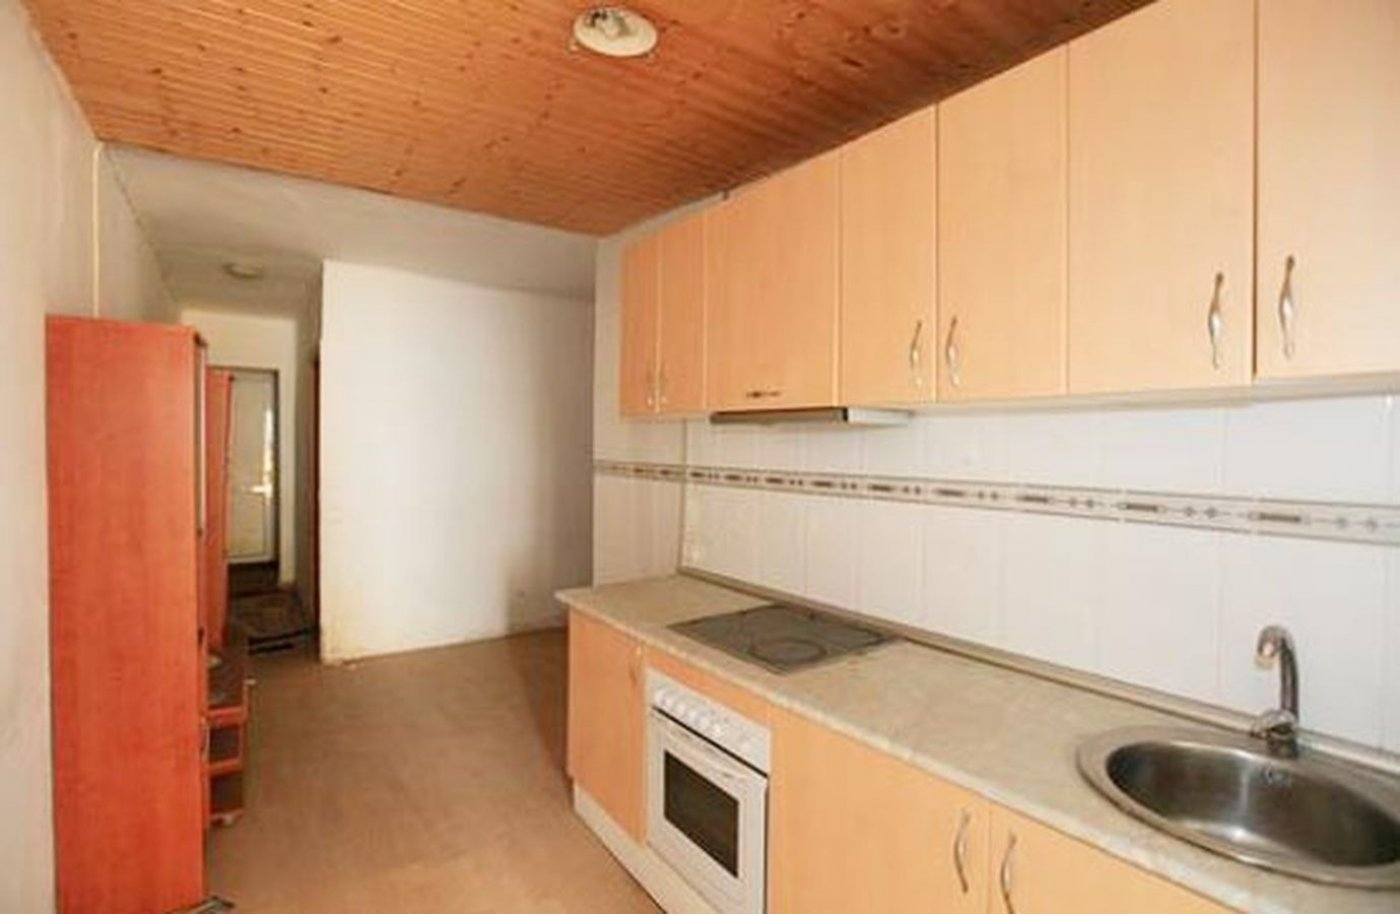 House for sale in Ronda, Alcanar